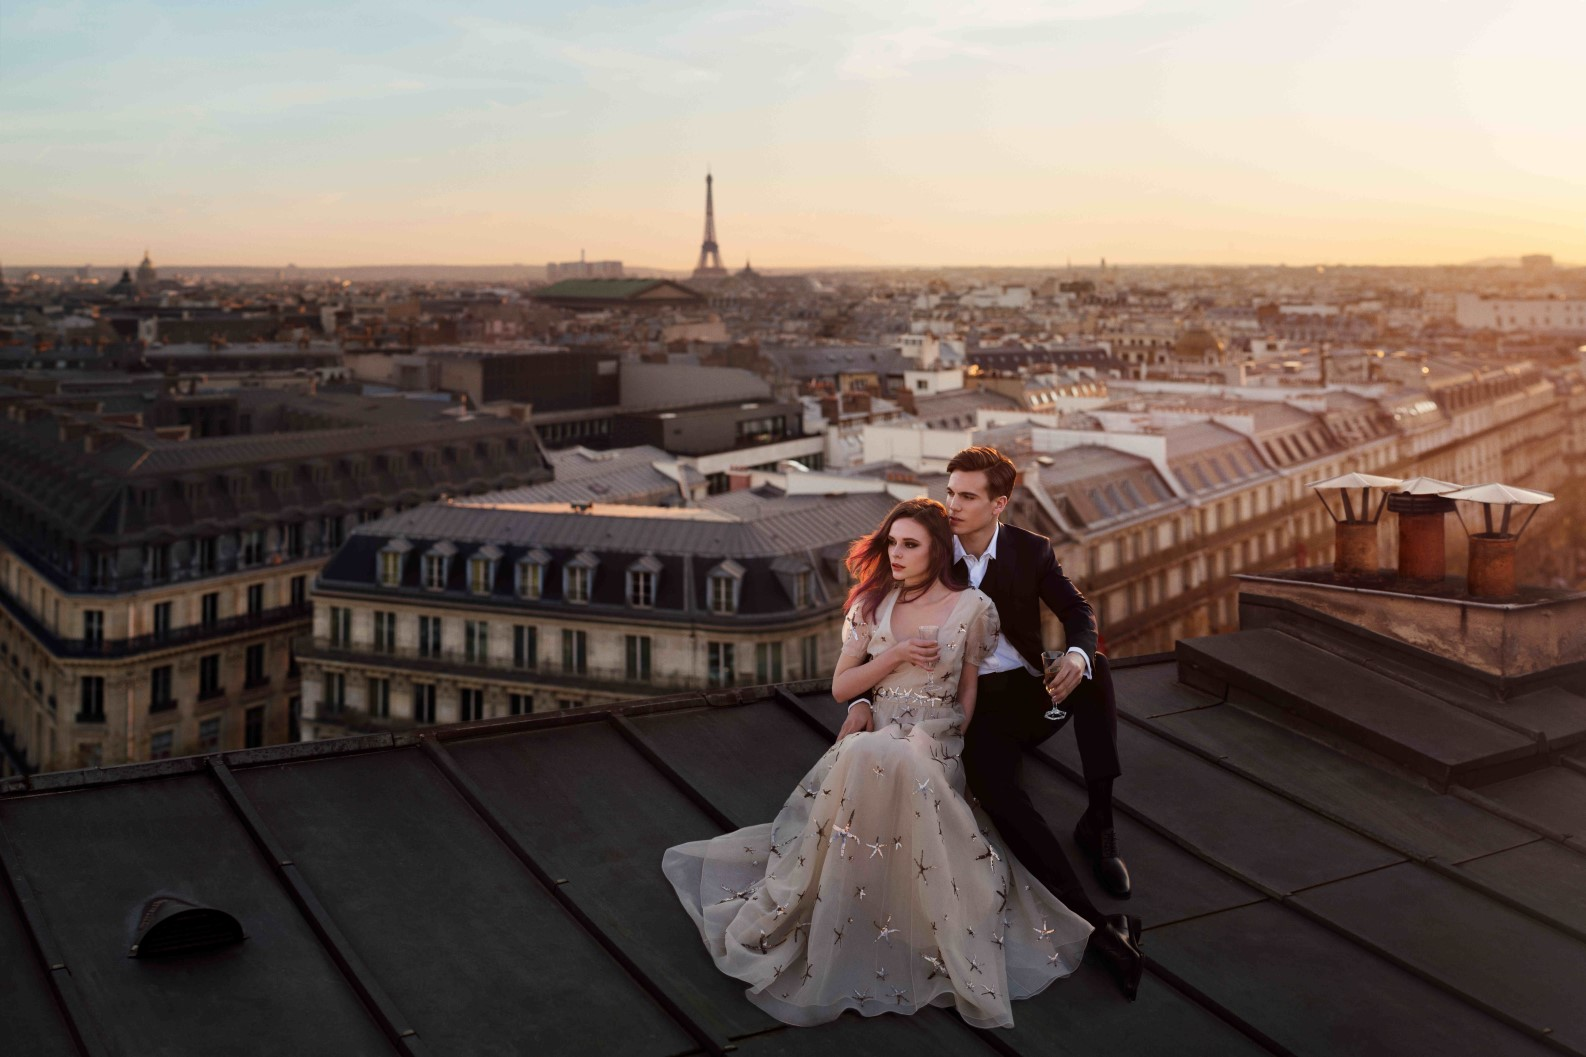 FallForFrance2015-Paris_Rooftop_V3_LowerRes-